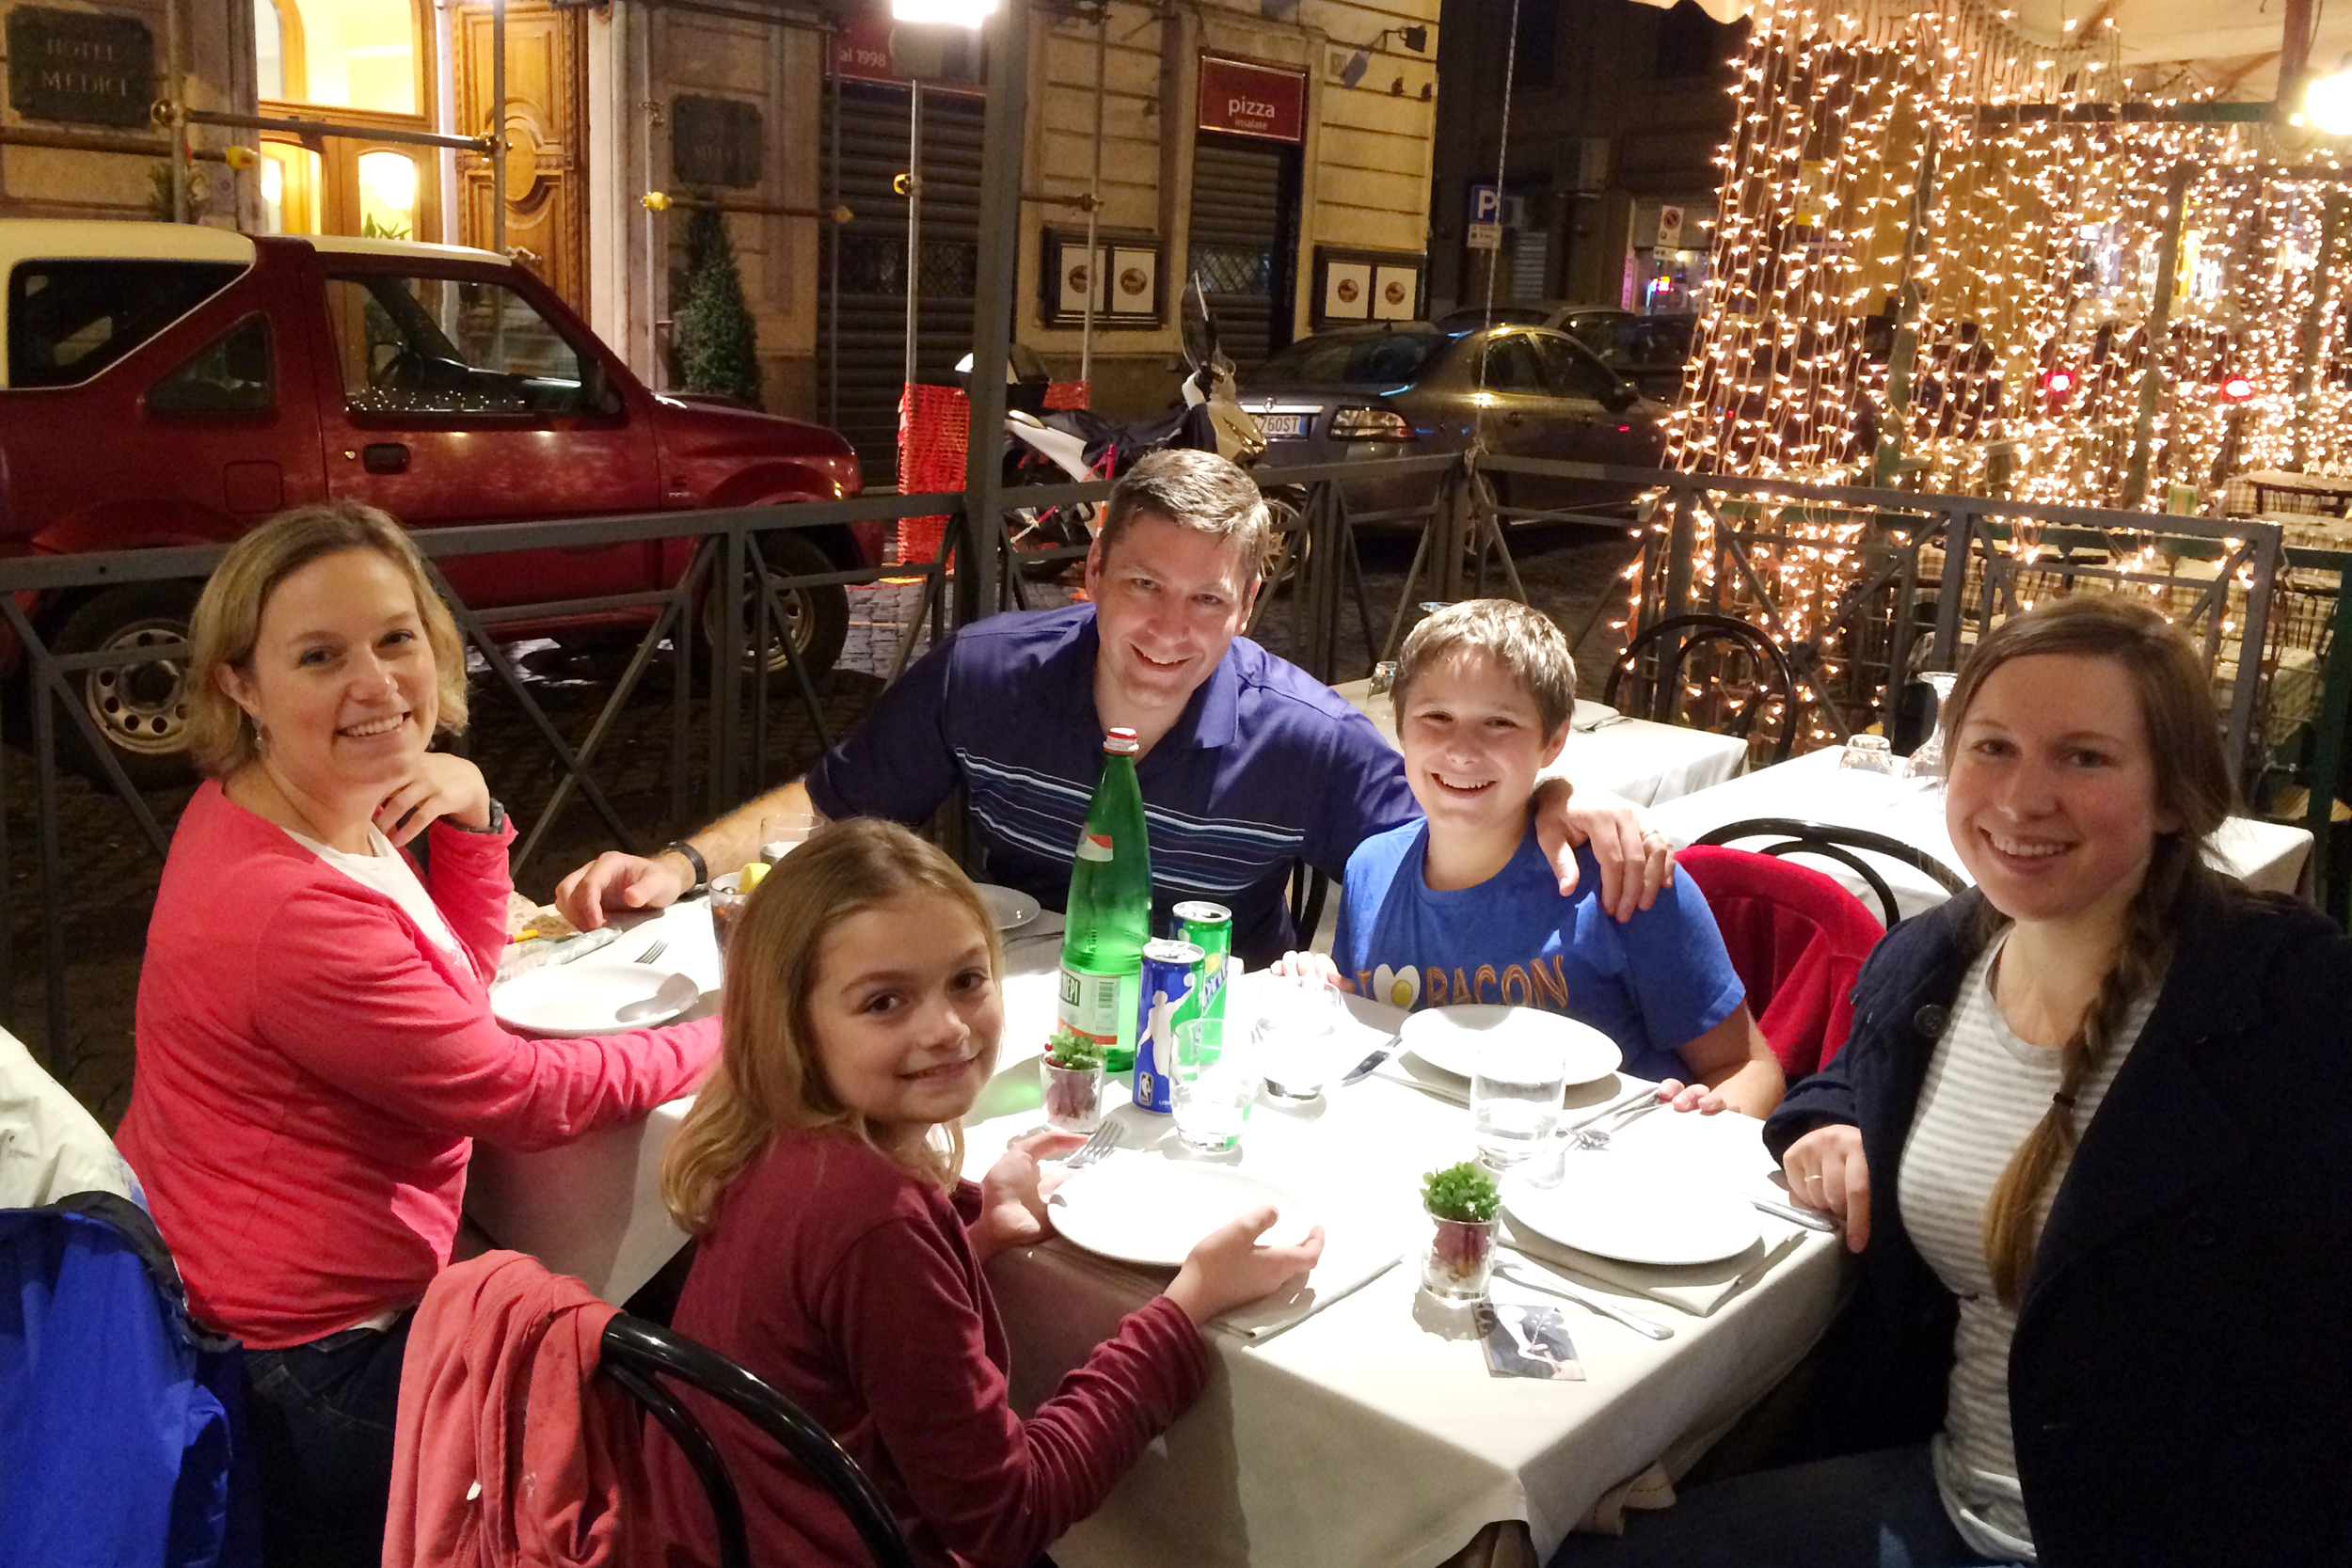 Thanksgiving Dinner! We were grateful to be in Rome!